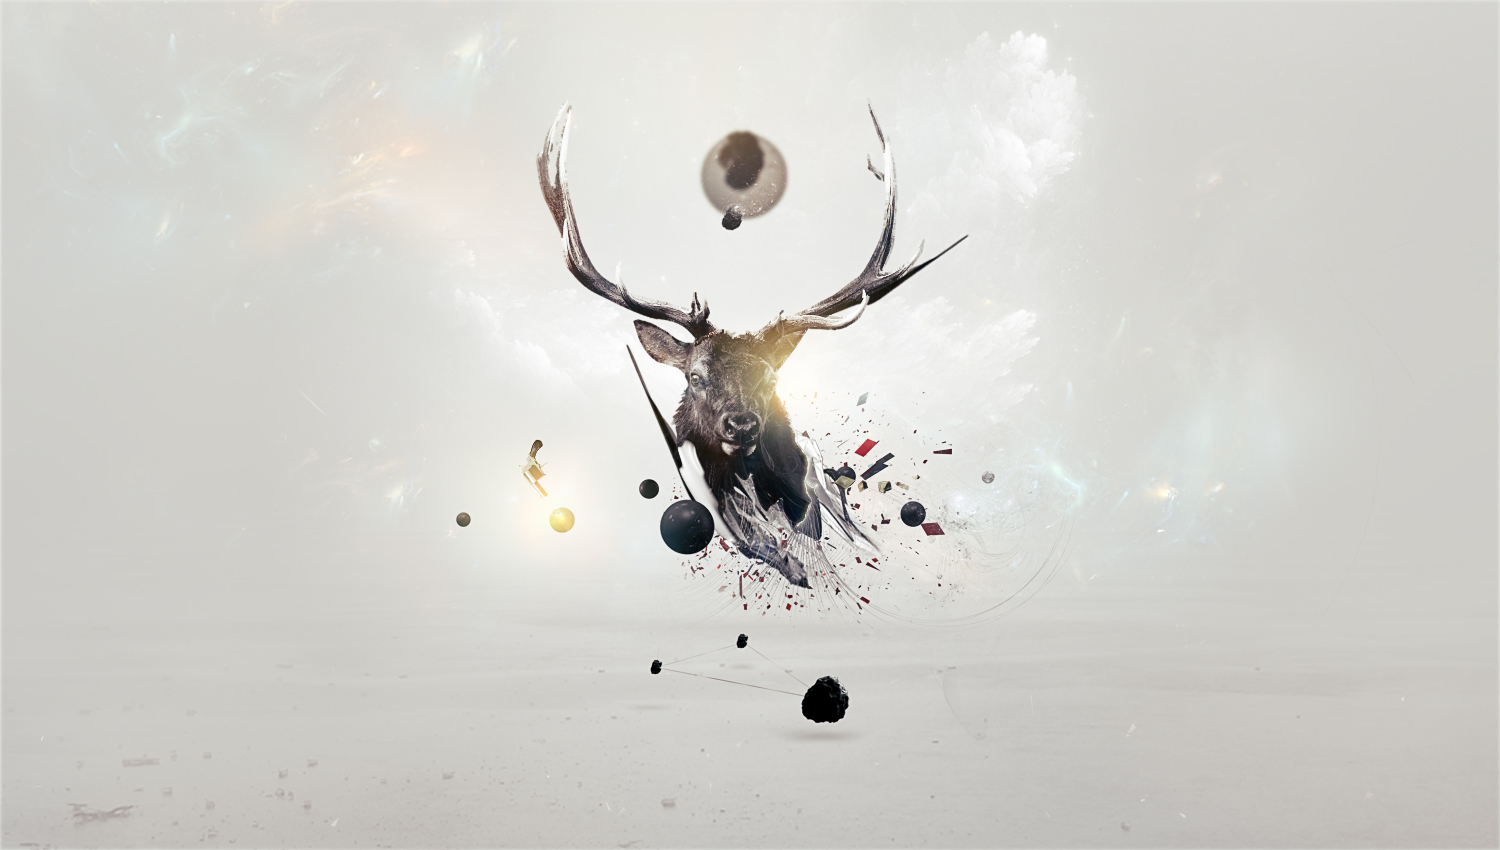 http://3.bp.blogspot.com/-0Trj_cnq9PQ/UHIDss3i9sI/AAAAAAAACWE/GKoFiC40Gnc/s1600/Buck+Deer+Abstract+wallpaper.jpg